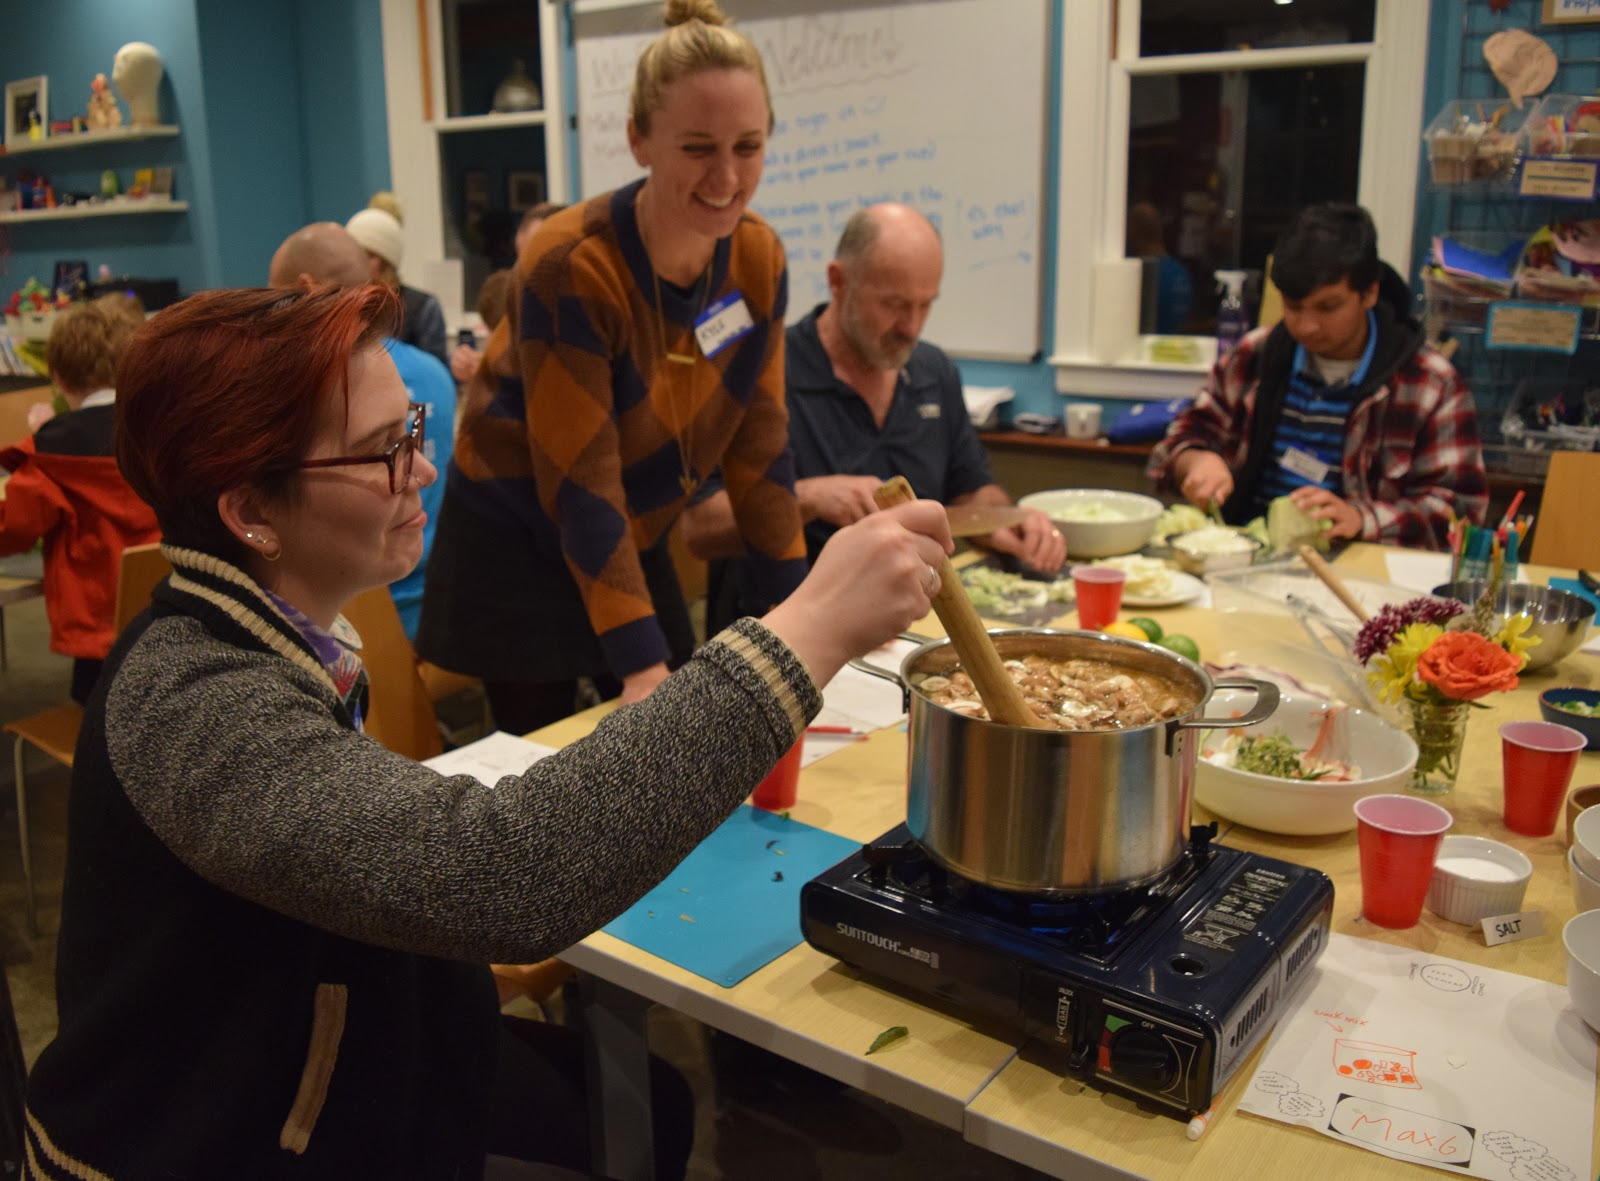 A photograph of meetup participants cooking together. One is stirring a pot and the other watches.